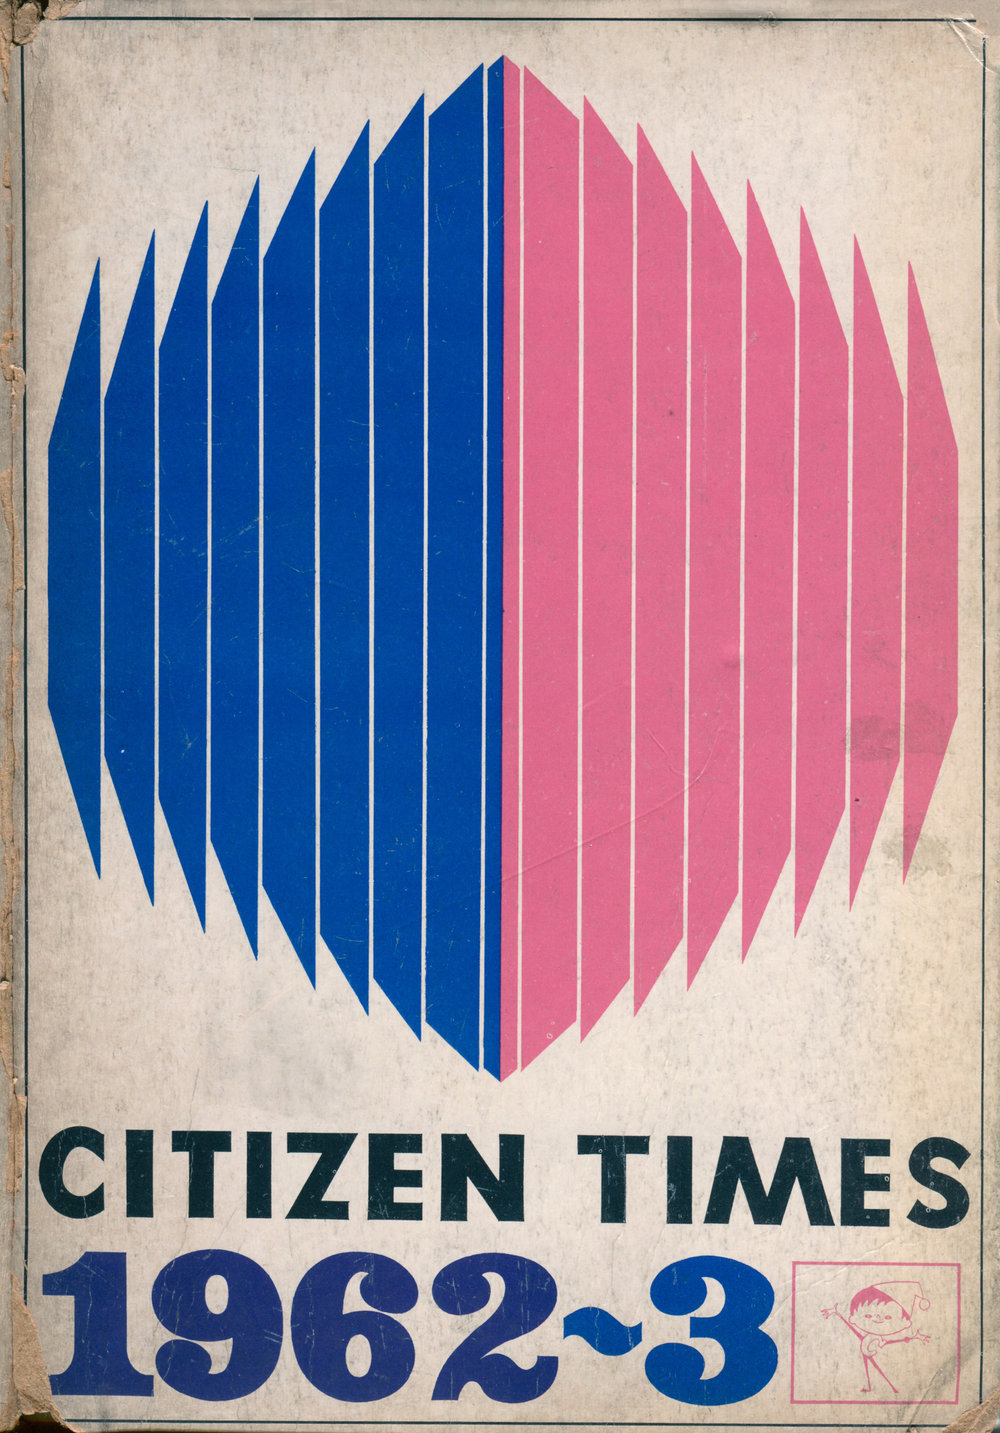 Citizen Times 1962-3 Binder